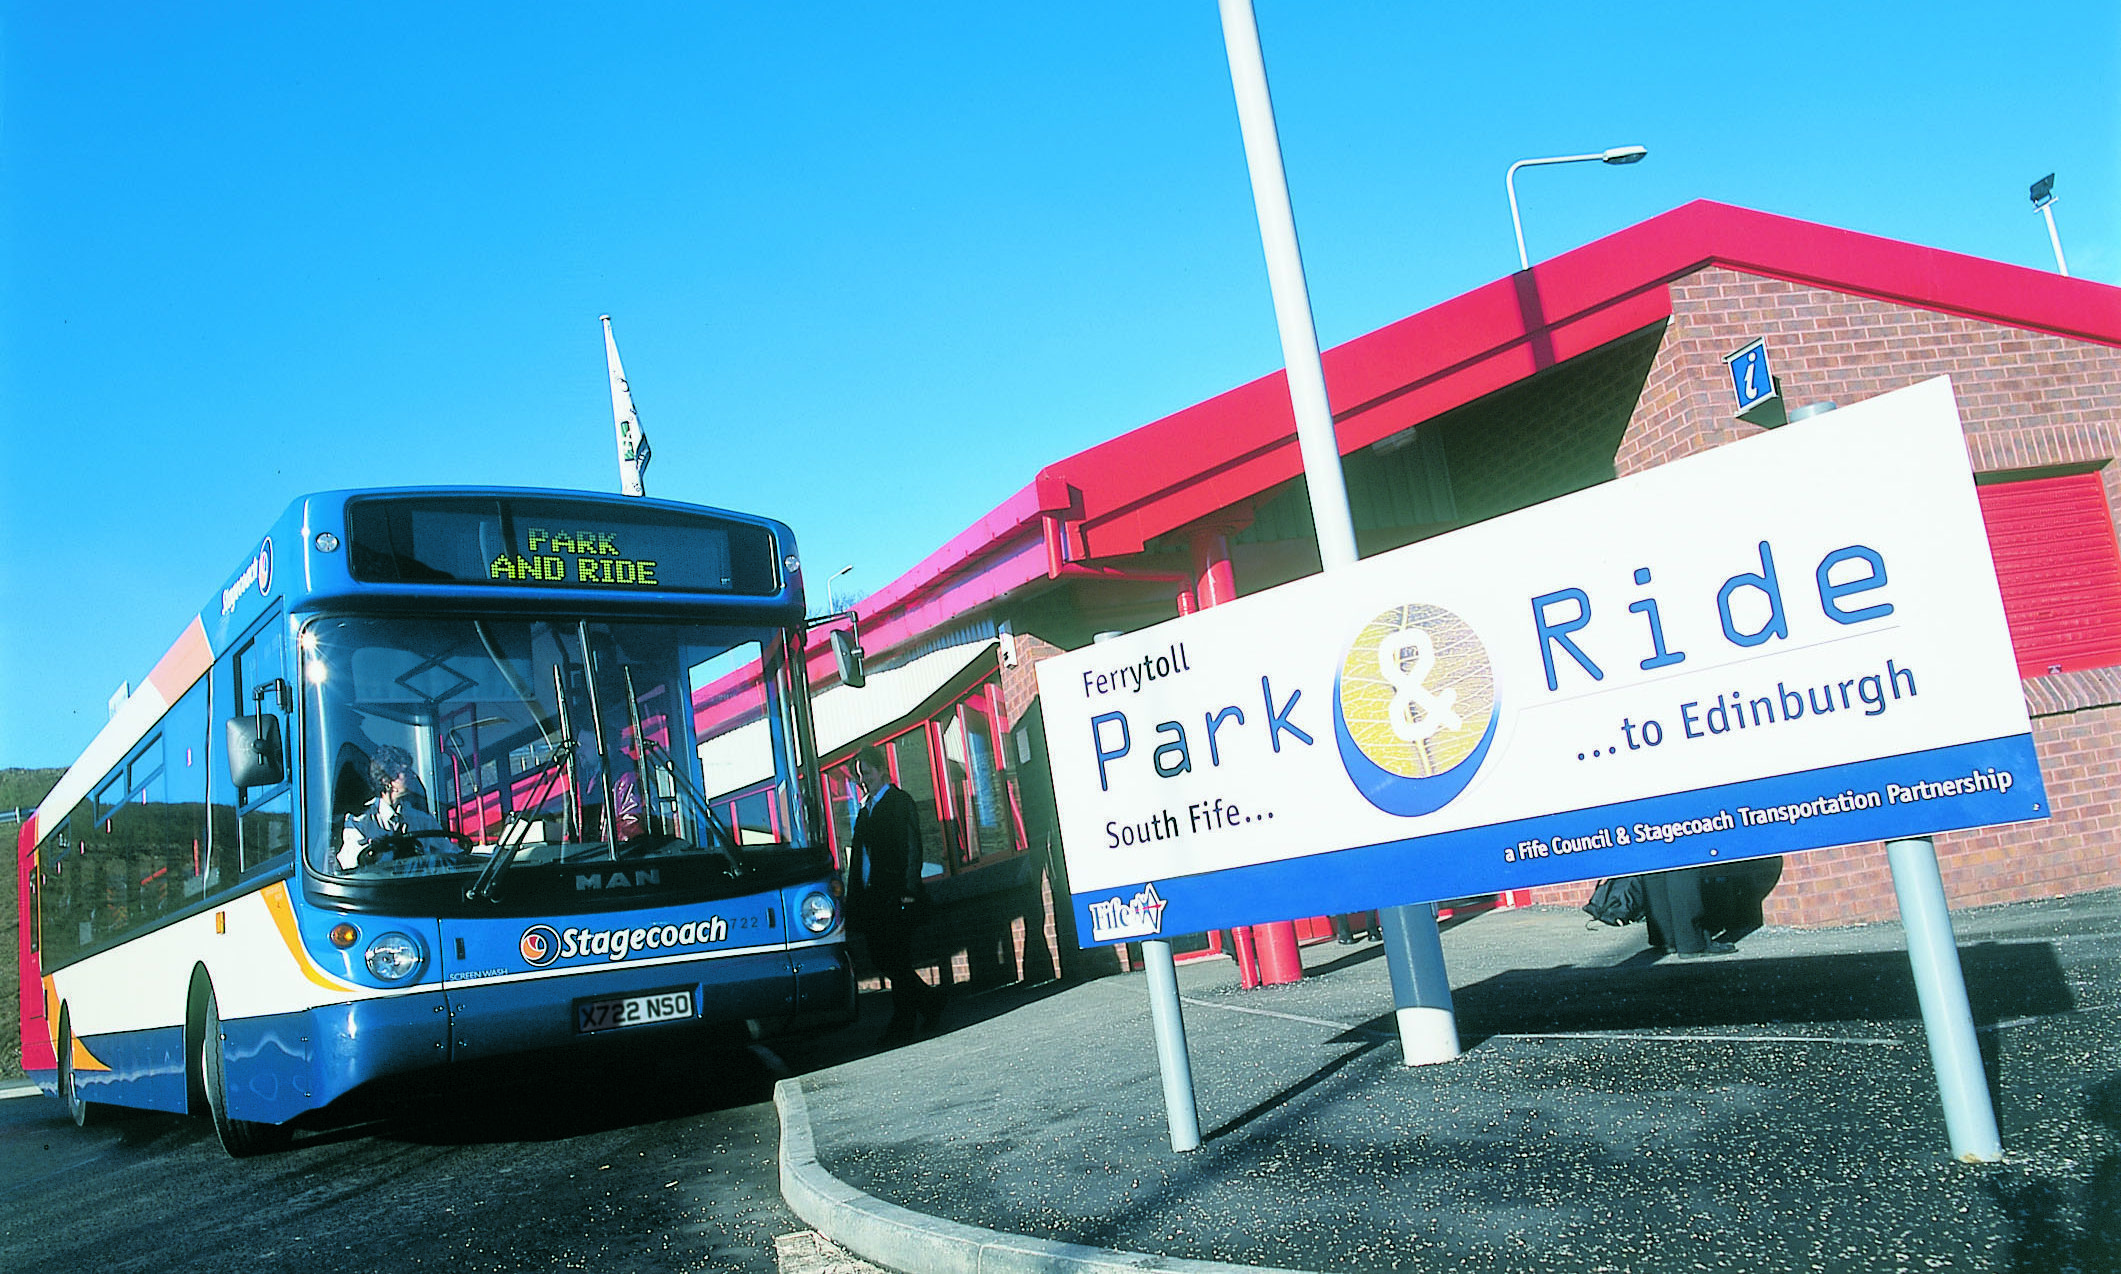 Ferrytoll park and ride